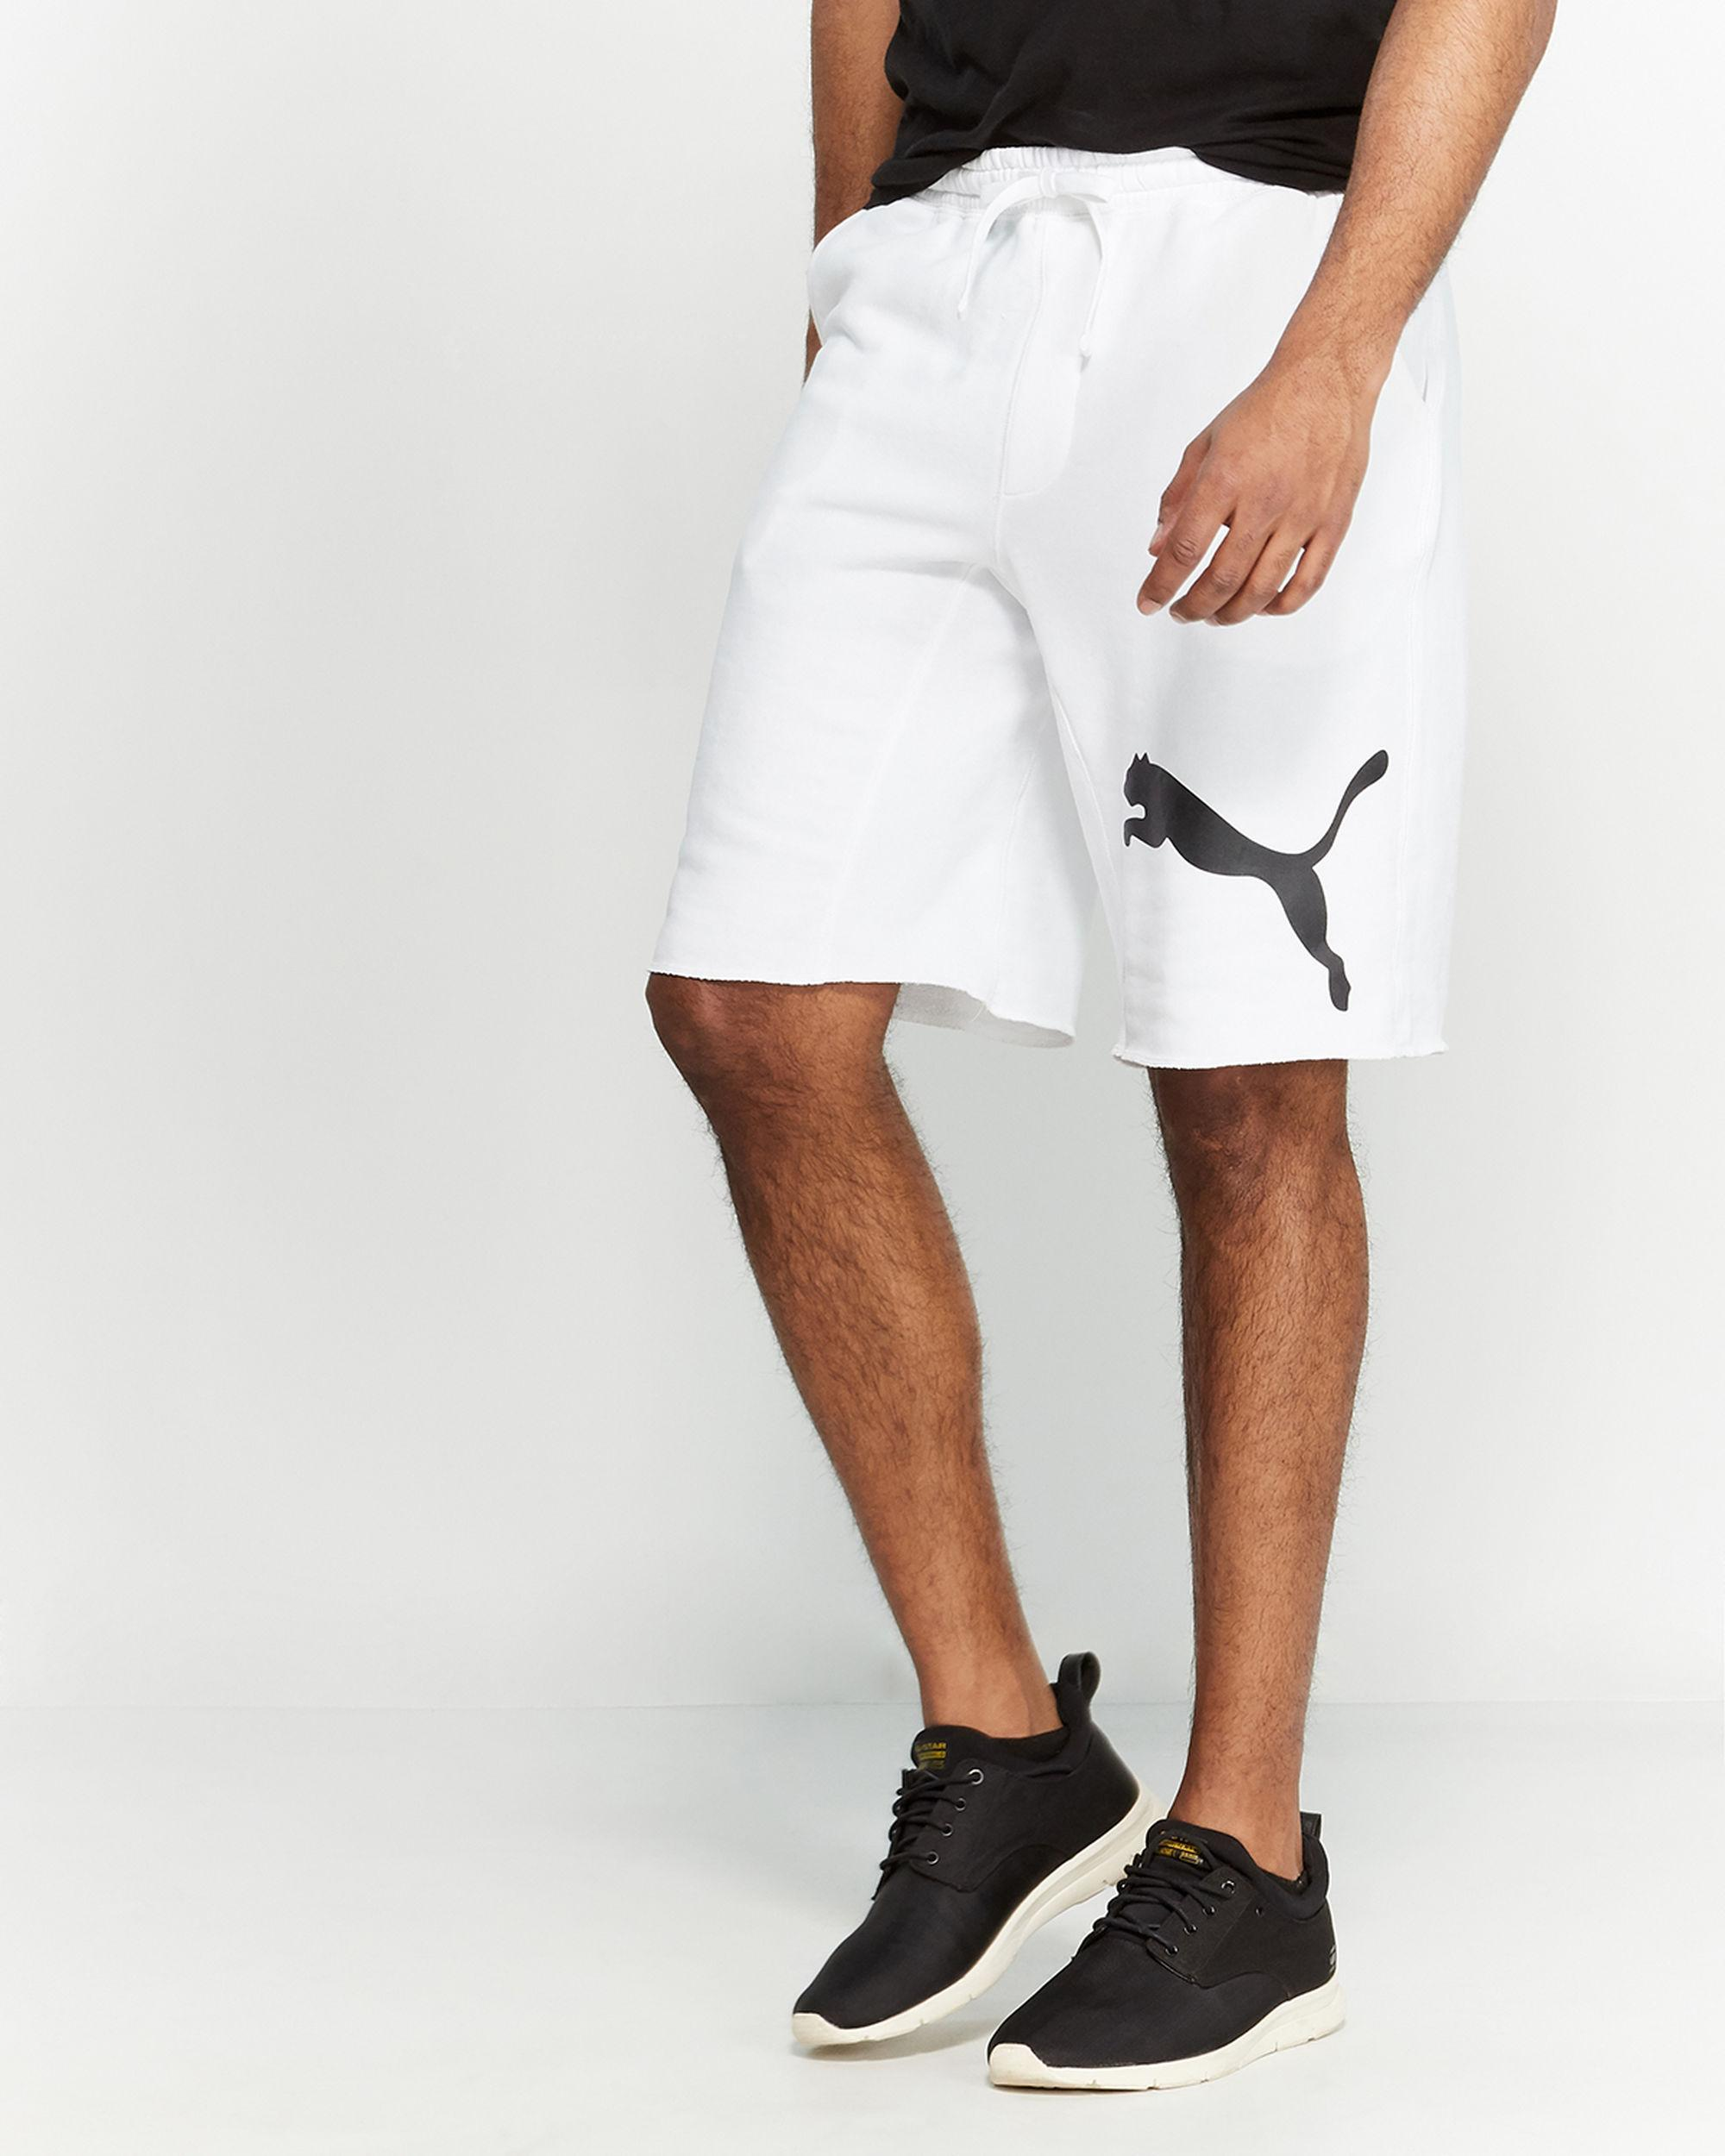 89bec970bb05 Lyst - PUMA Victory Sweat Shorts in White for Men